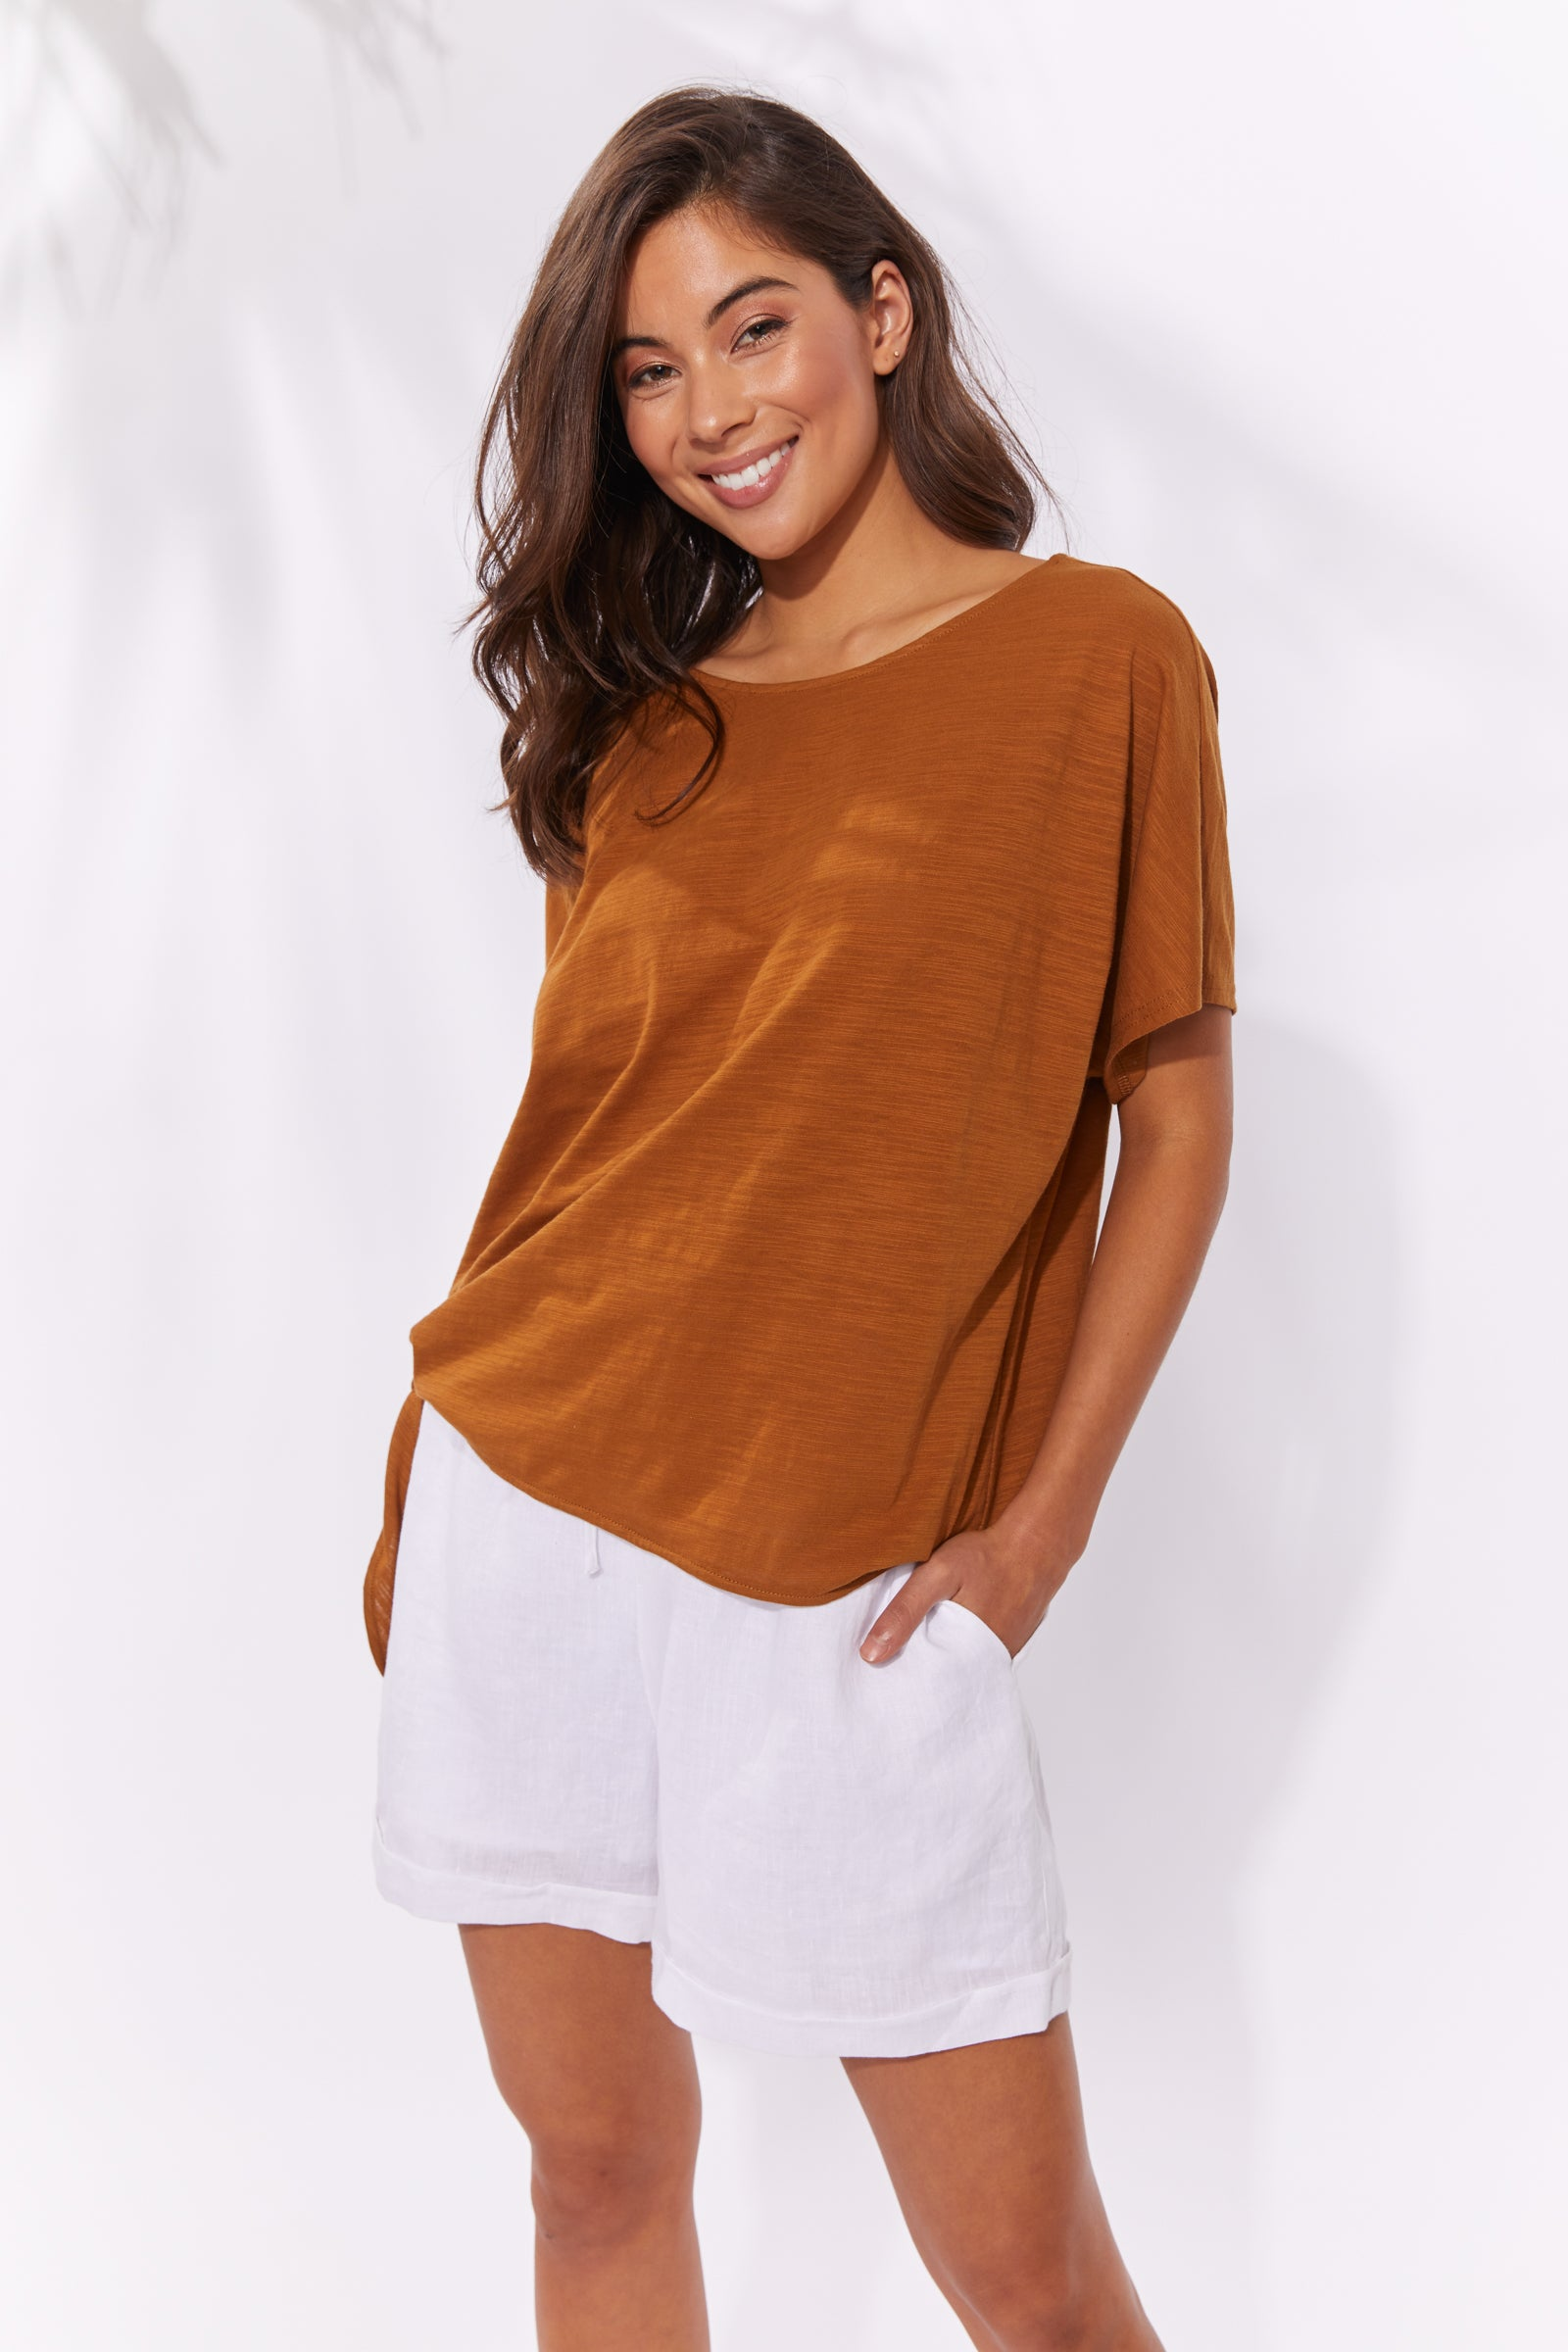 Majorca Tshirt - Caramel - The Haven Co